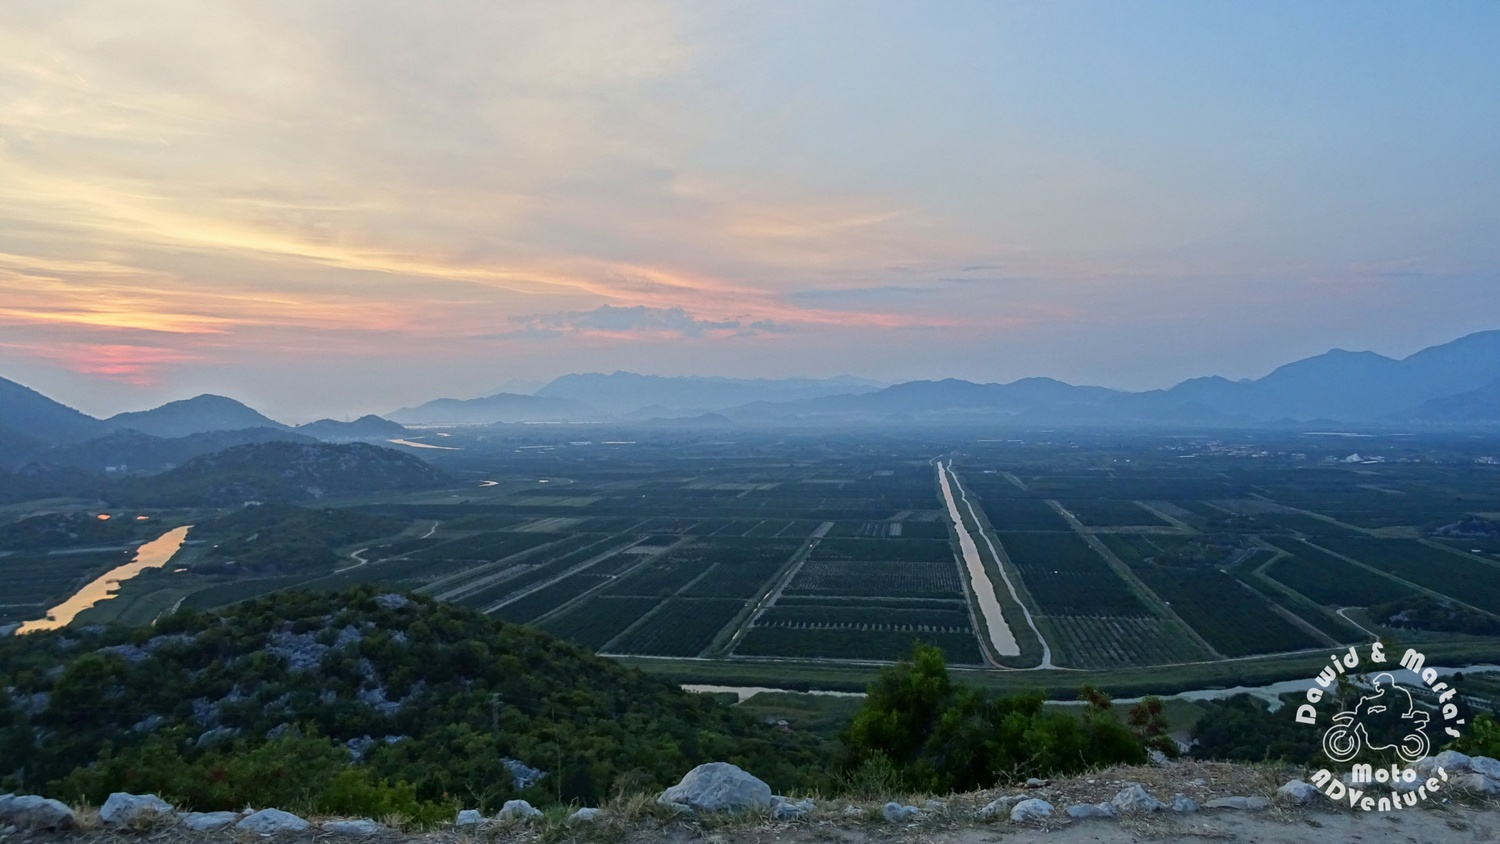 Lookout point at the fruit store in the Neretva River delta